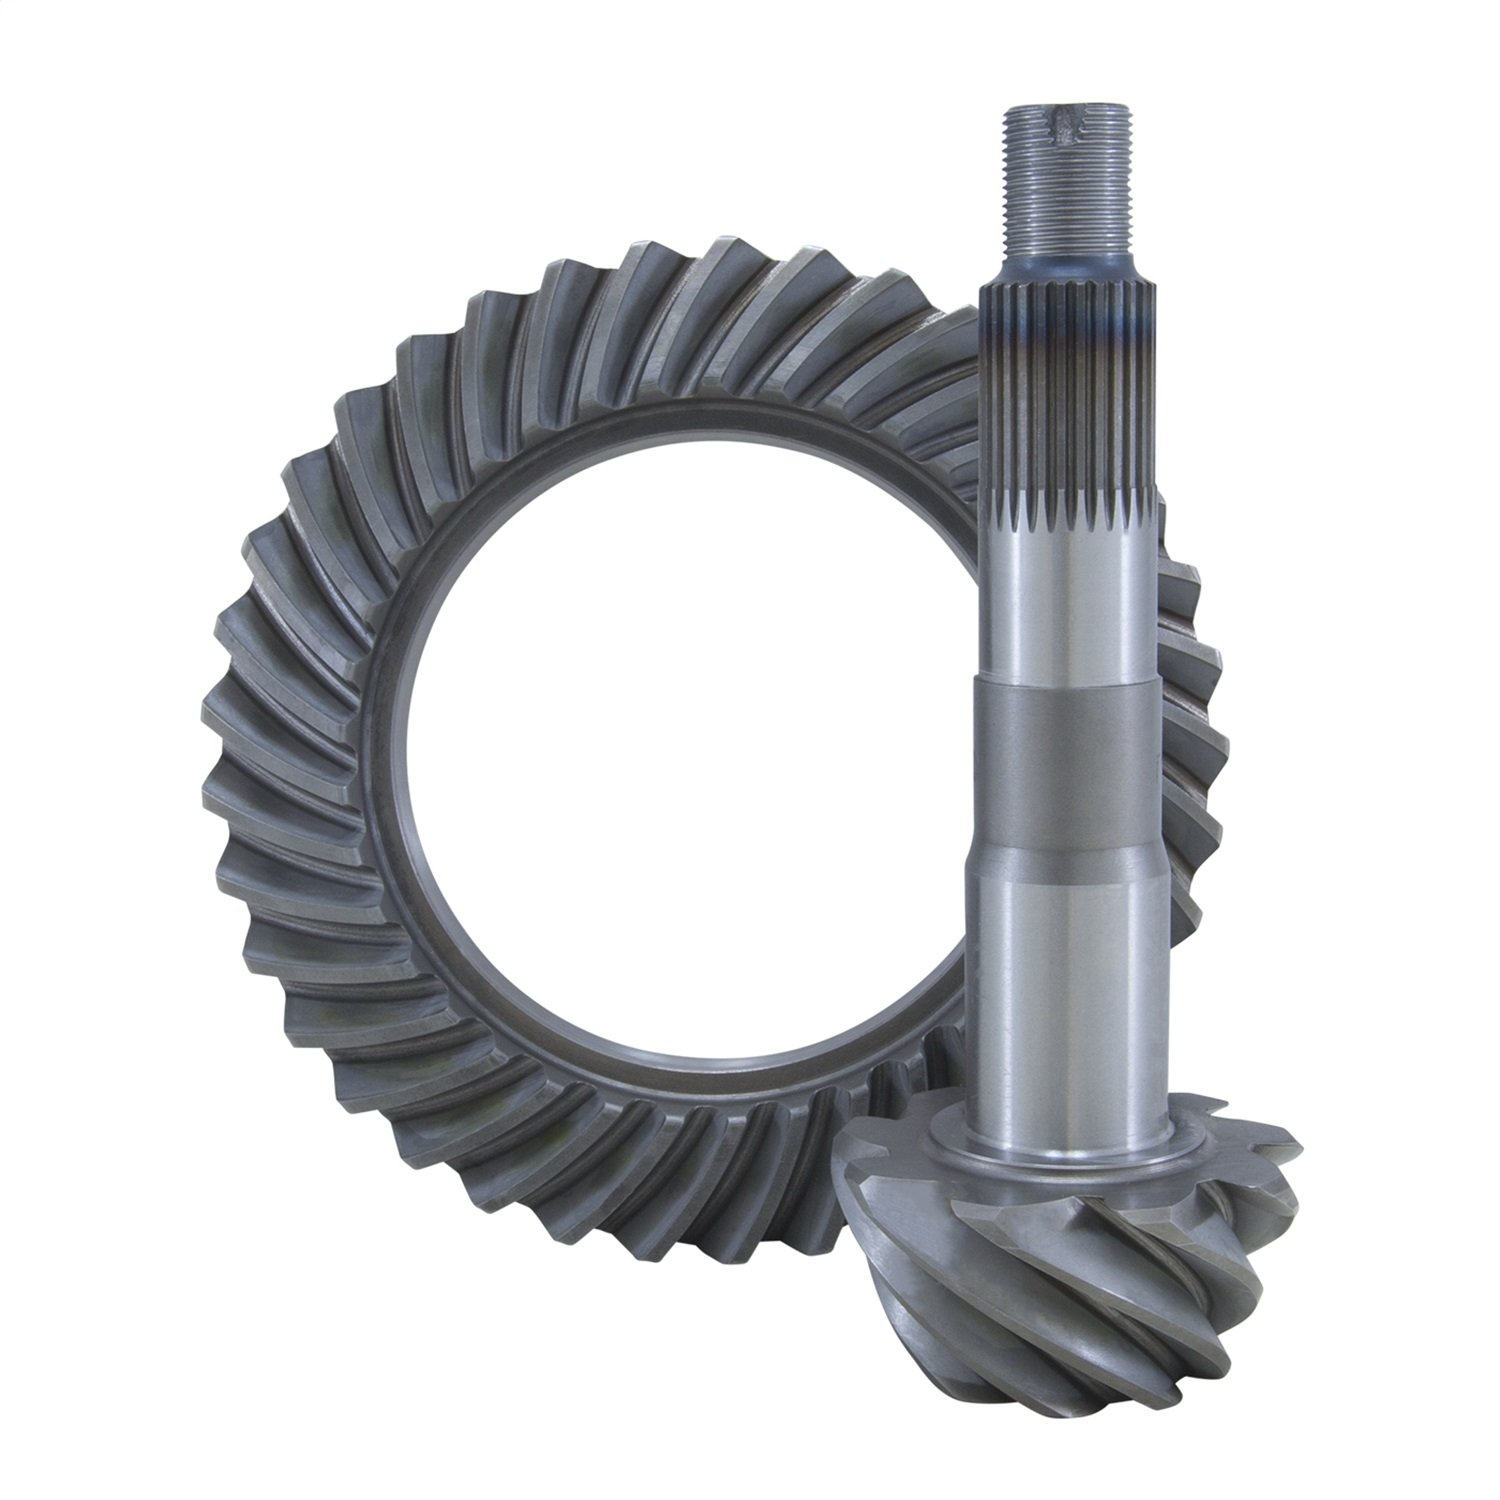 USA Standard Gear ZG TV6-529-29 Ring & Pinion Gear Sets